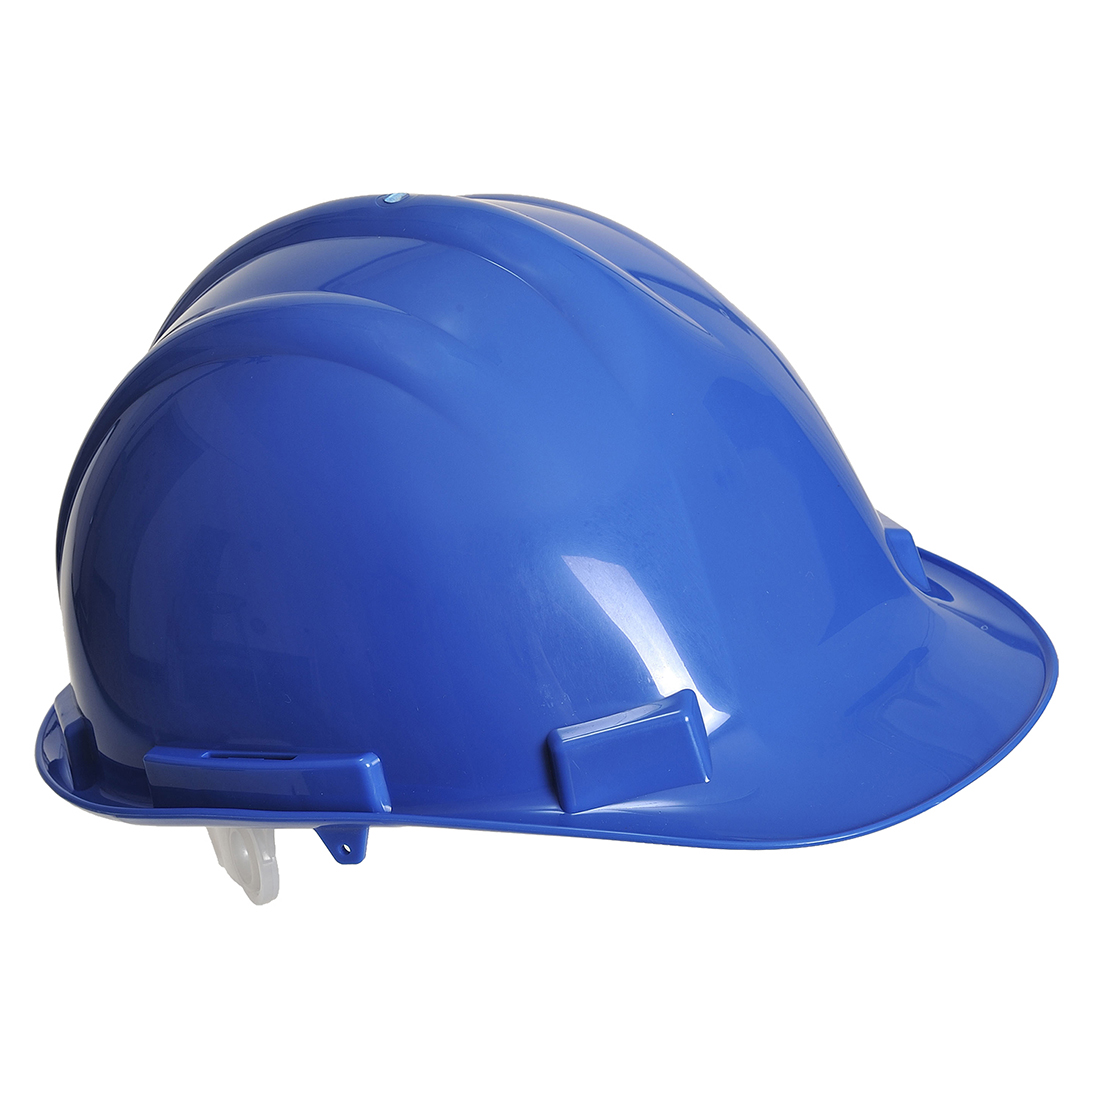 Portwest Expertbase PRO Safety Helmet